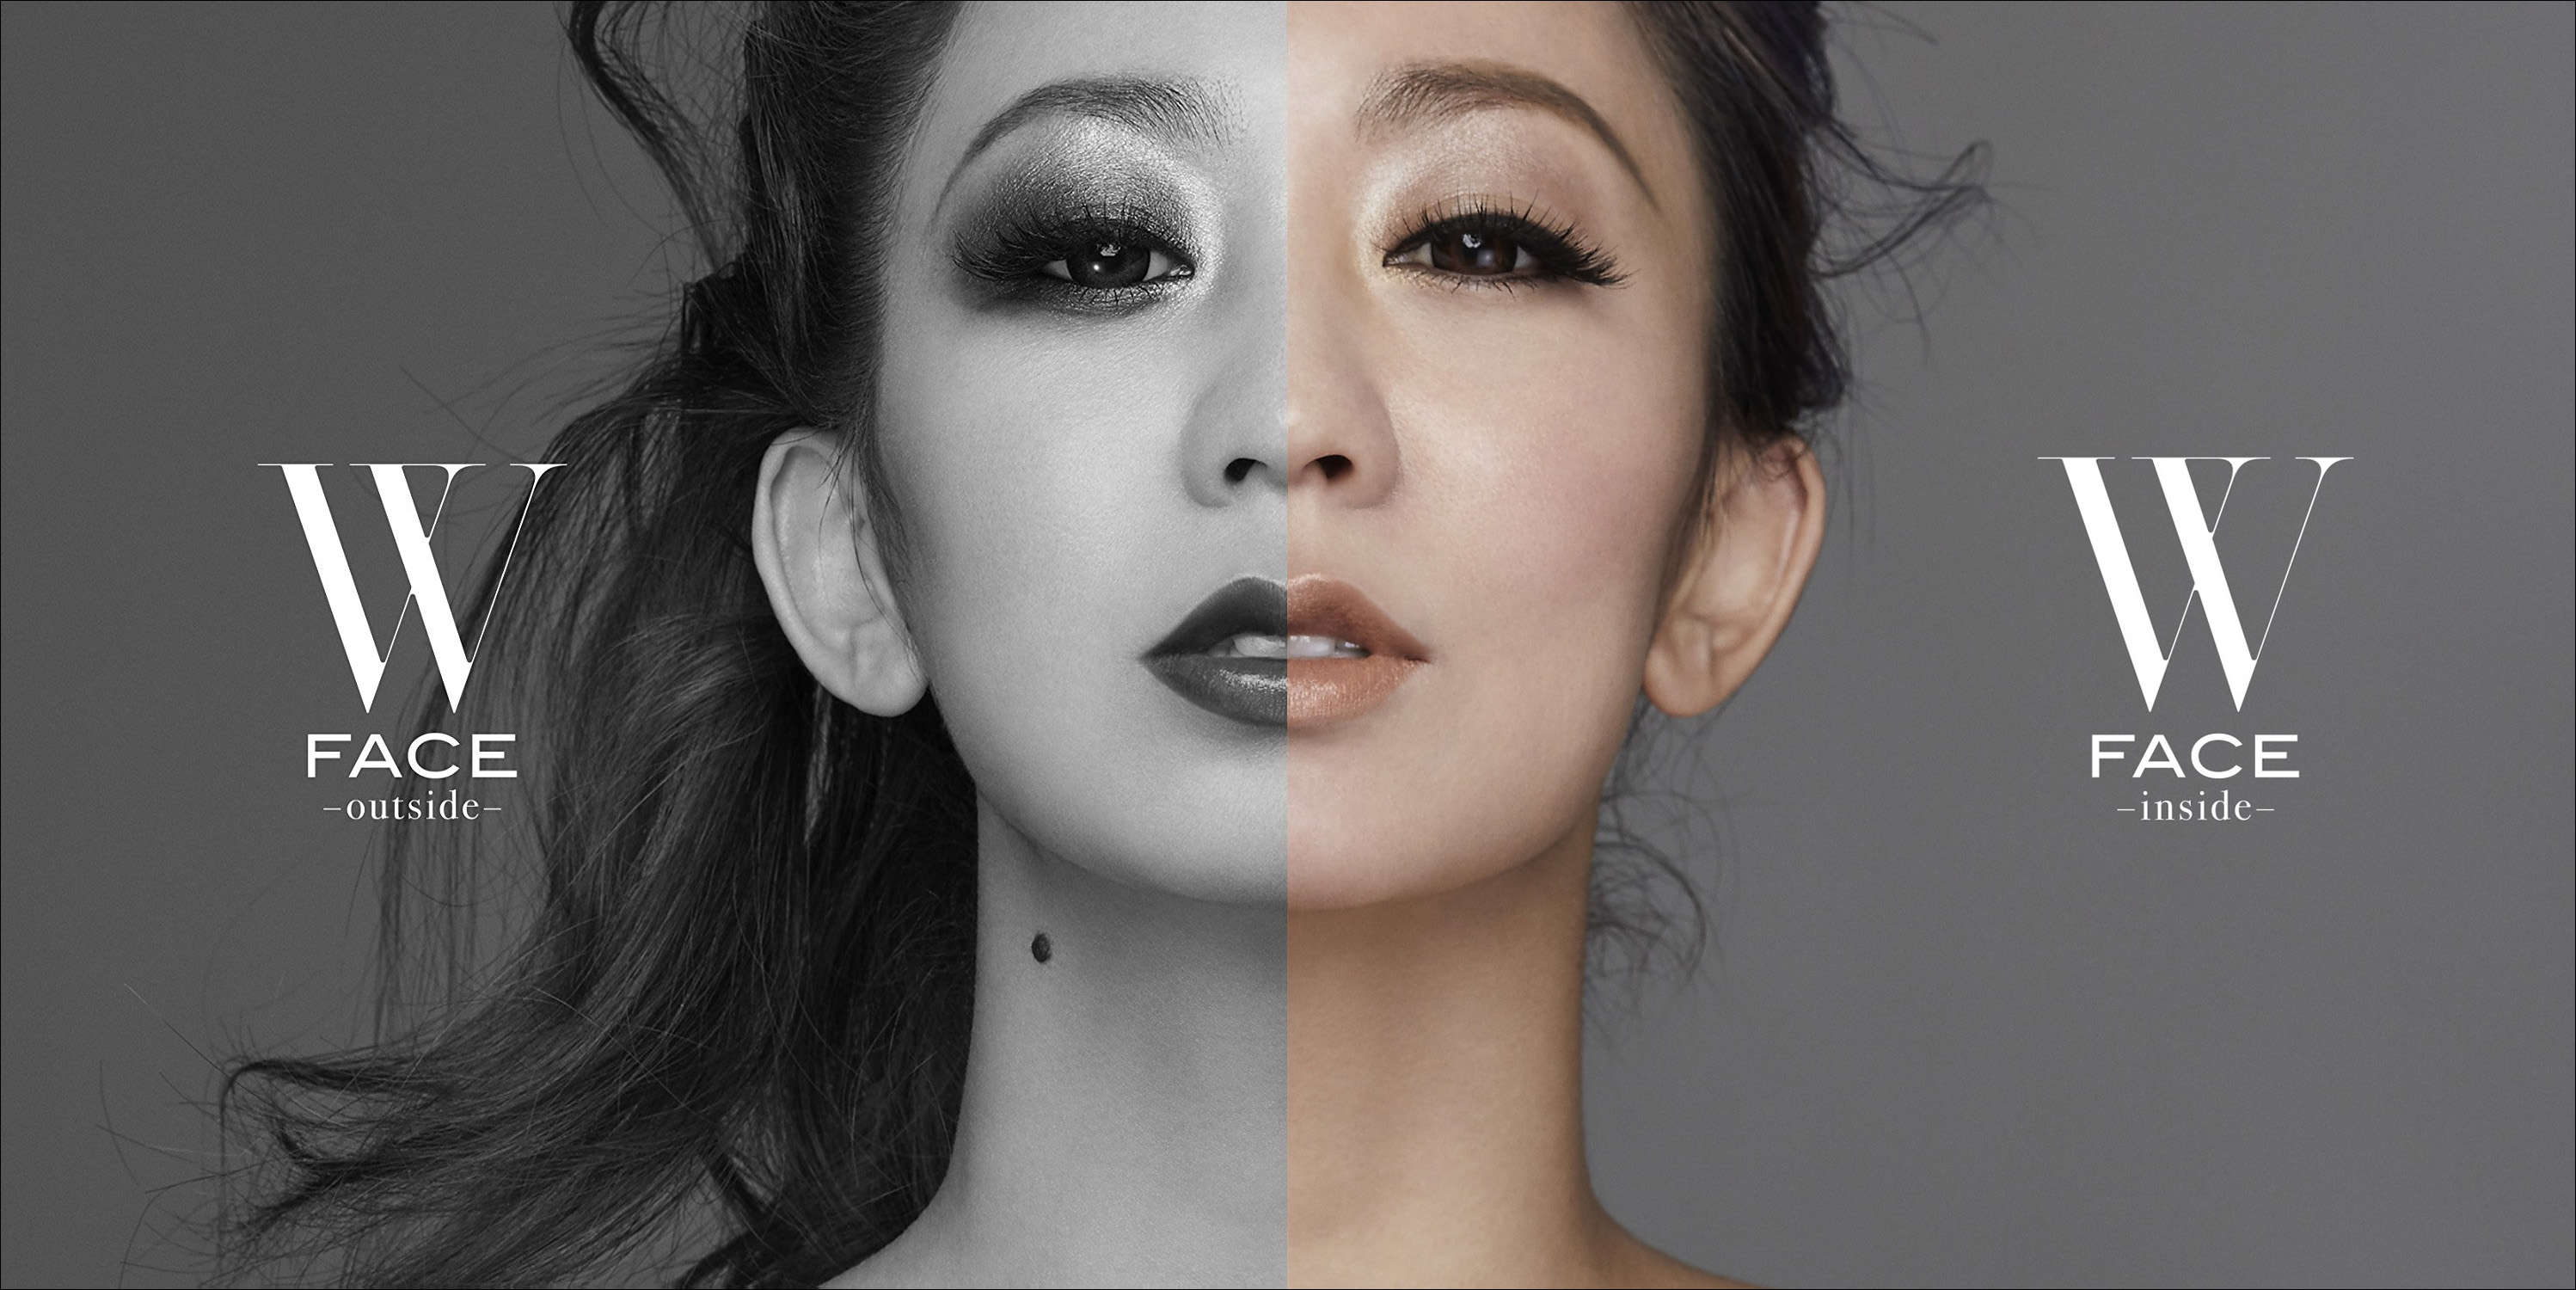 NekoPOP-Koda-Kumi-W-Face-inside-outside-best-cover